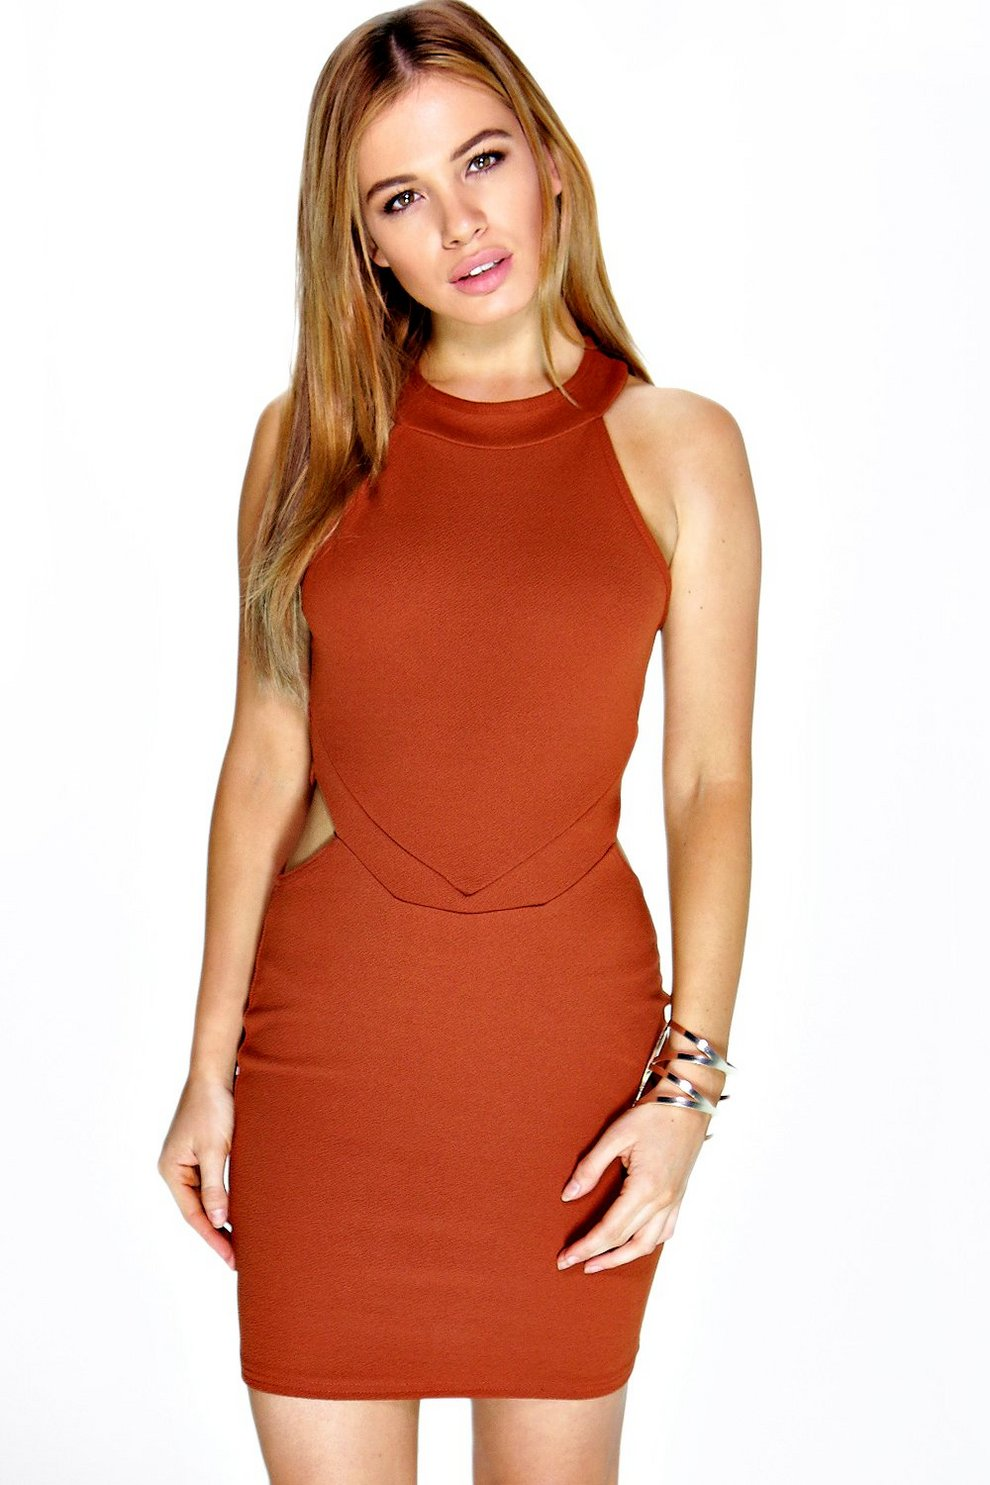 Cut Dress Out Neck Petite High Bodycon f6by7gYv